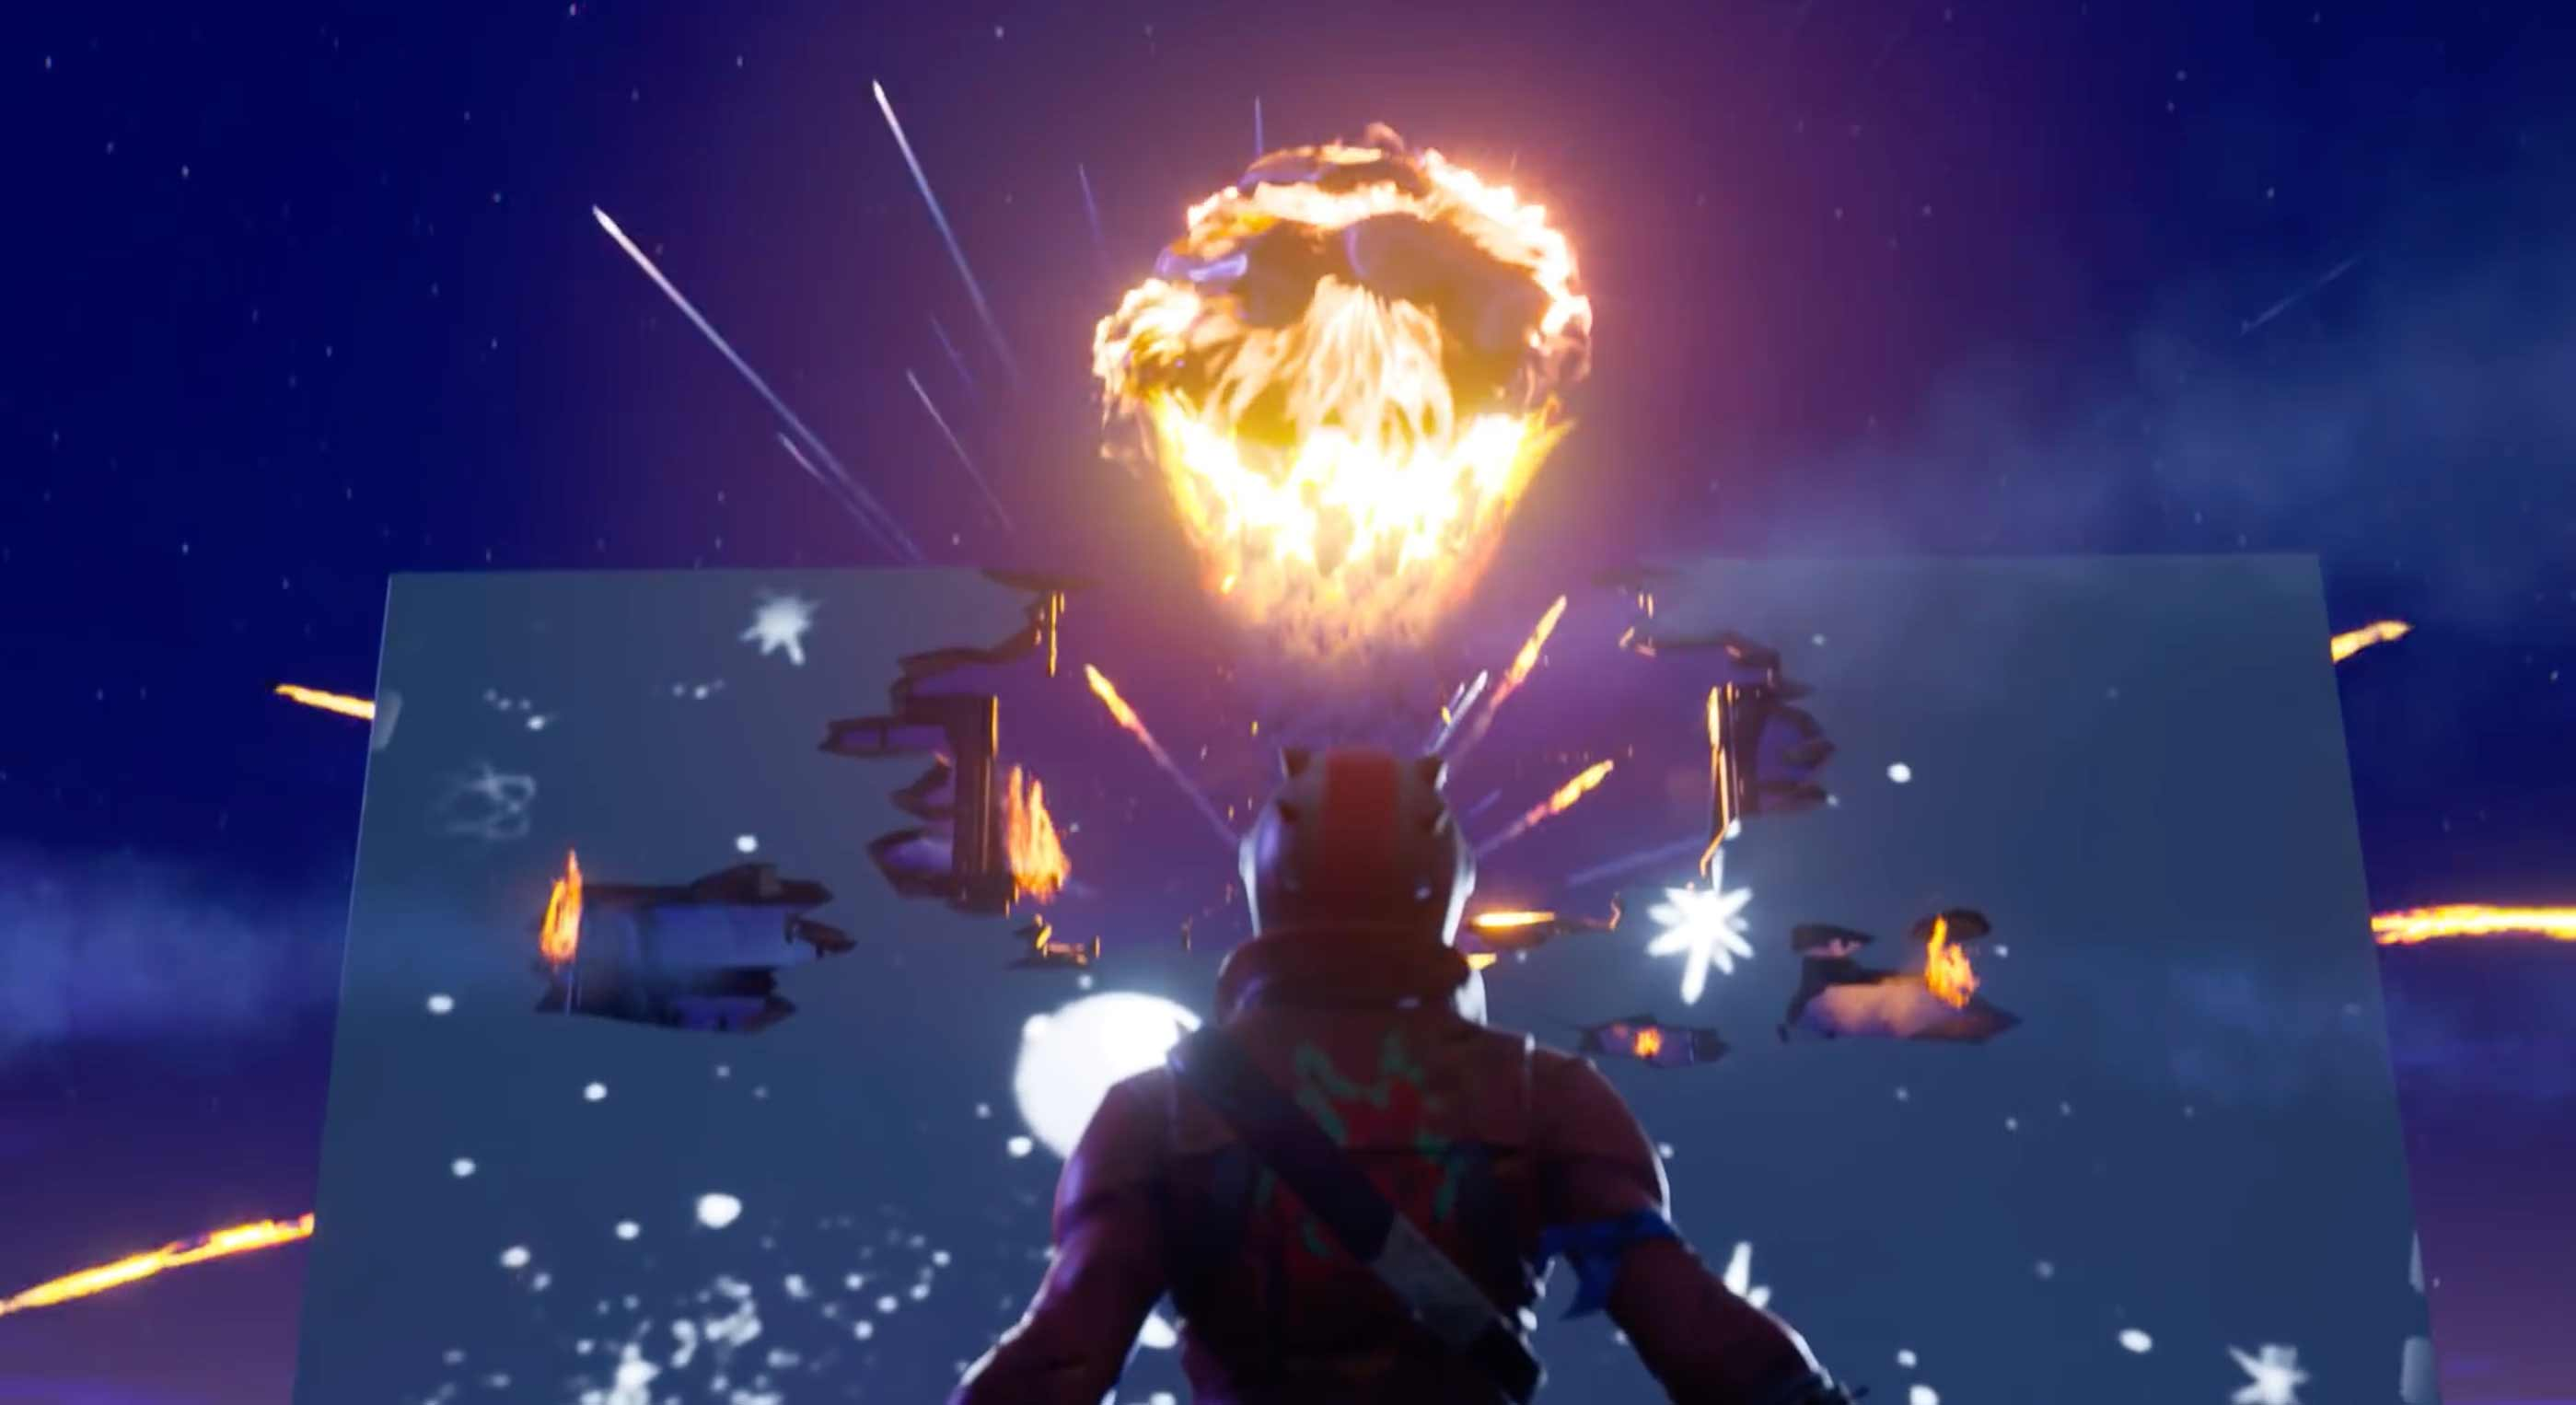 Fortnite lanza la temporada 4 estas son las novedades for Fortnite temporada 5 sala